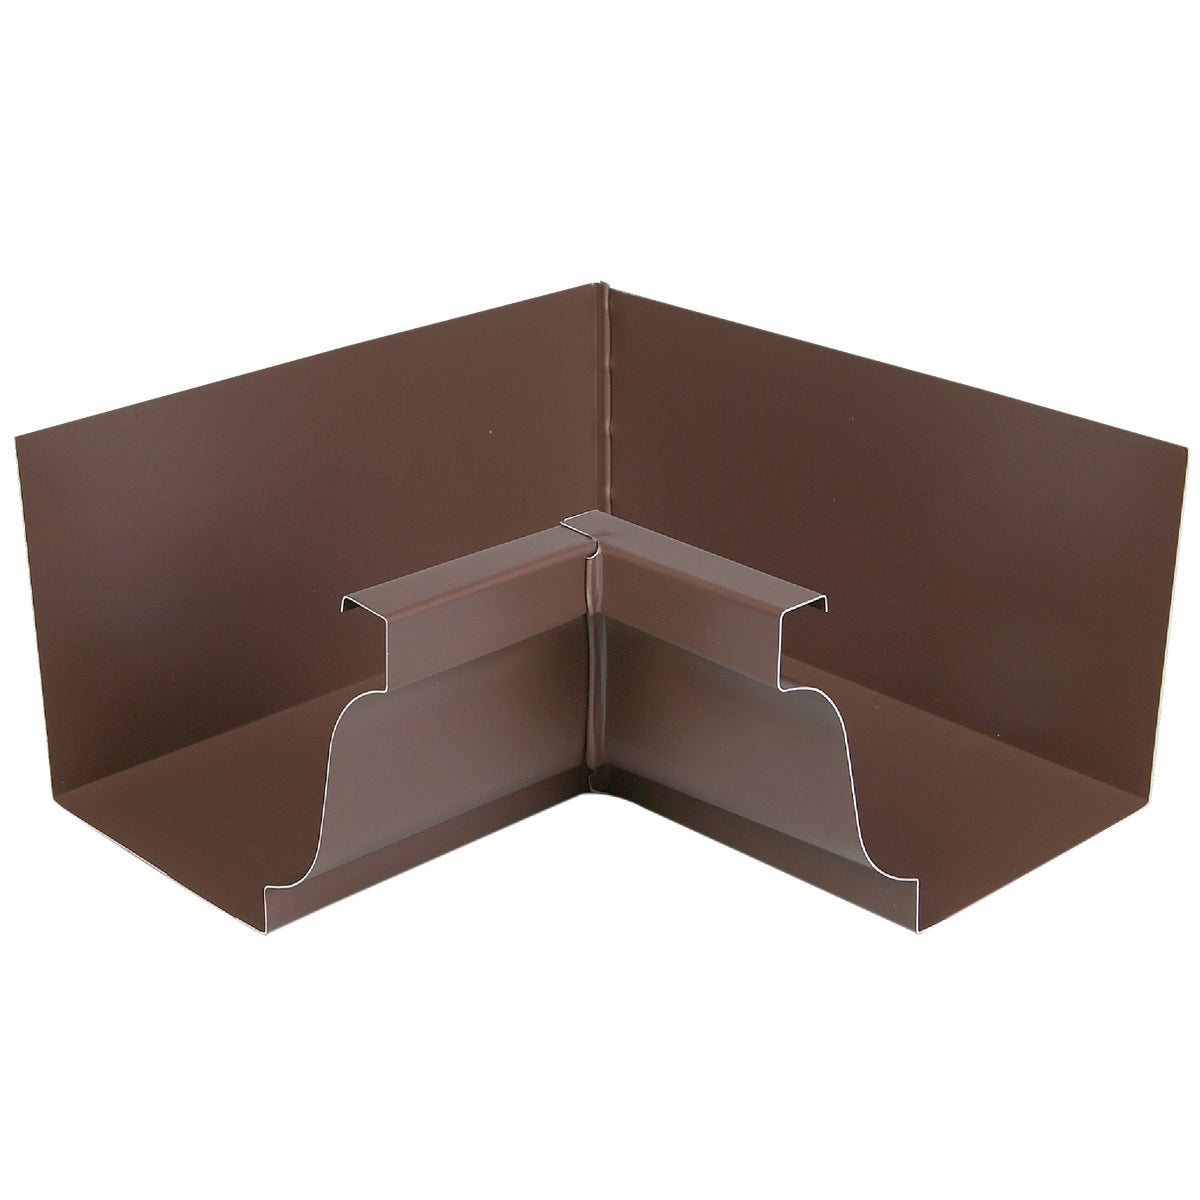 BROWN INSIDE MITRE - 2520119 by Amerimax Home Prod